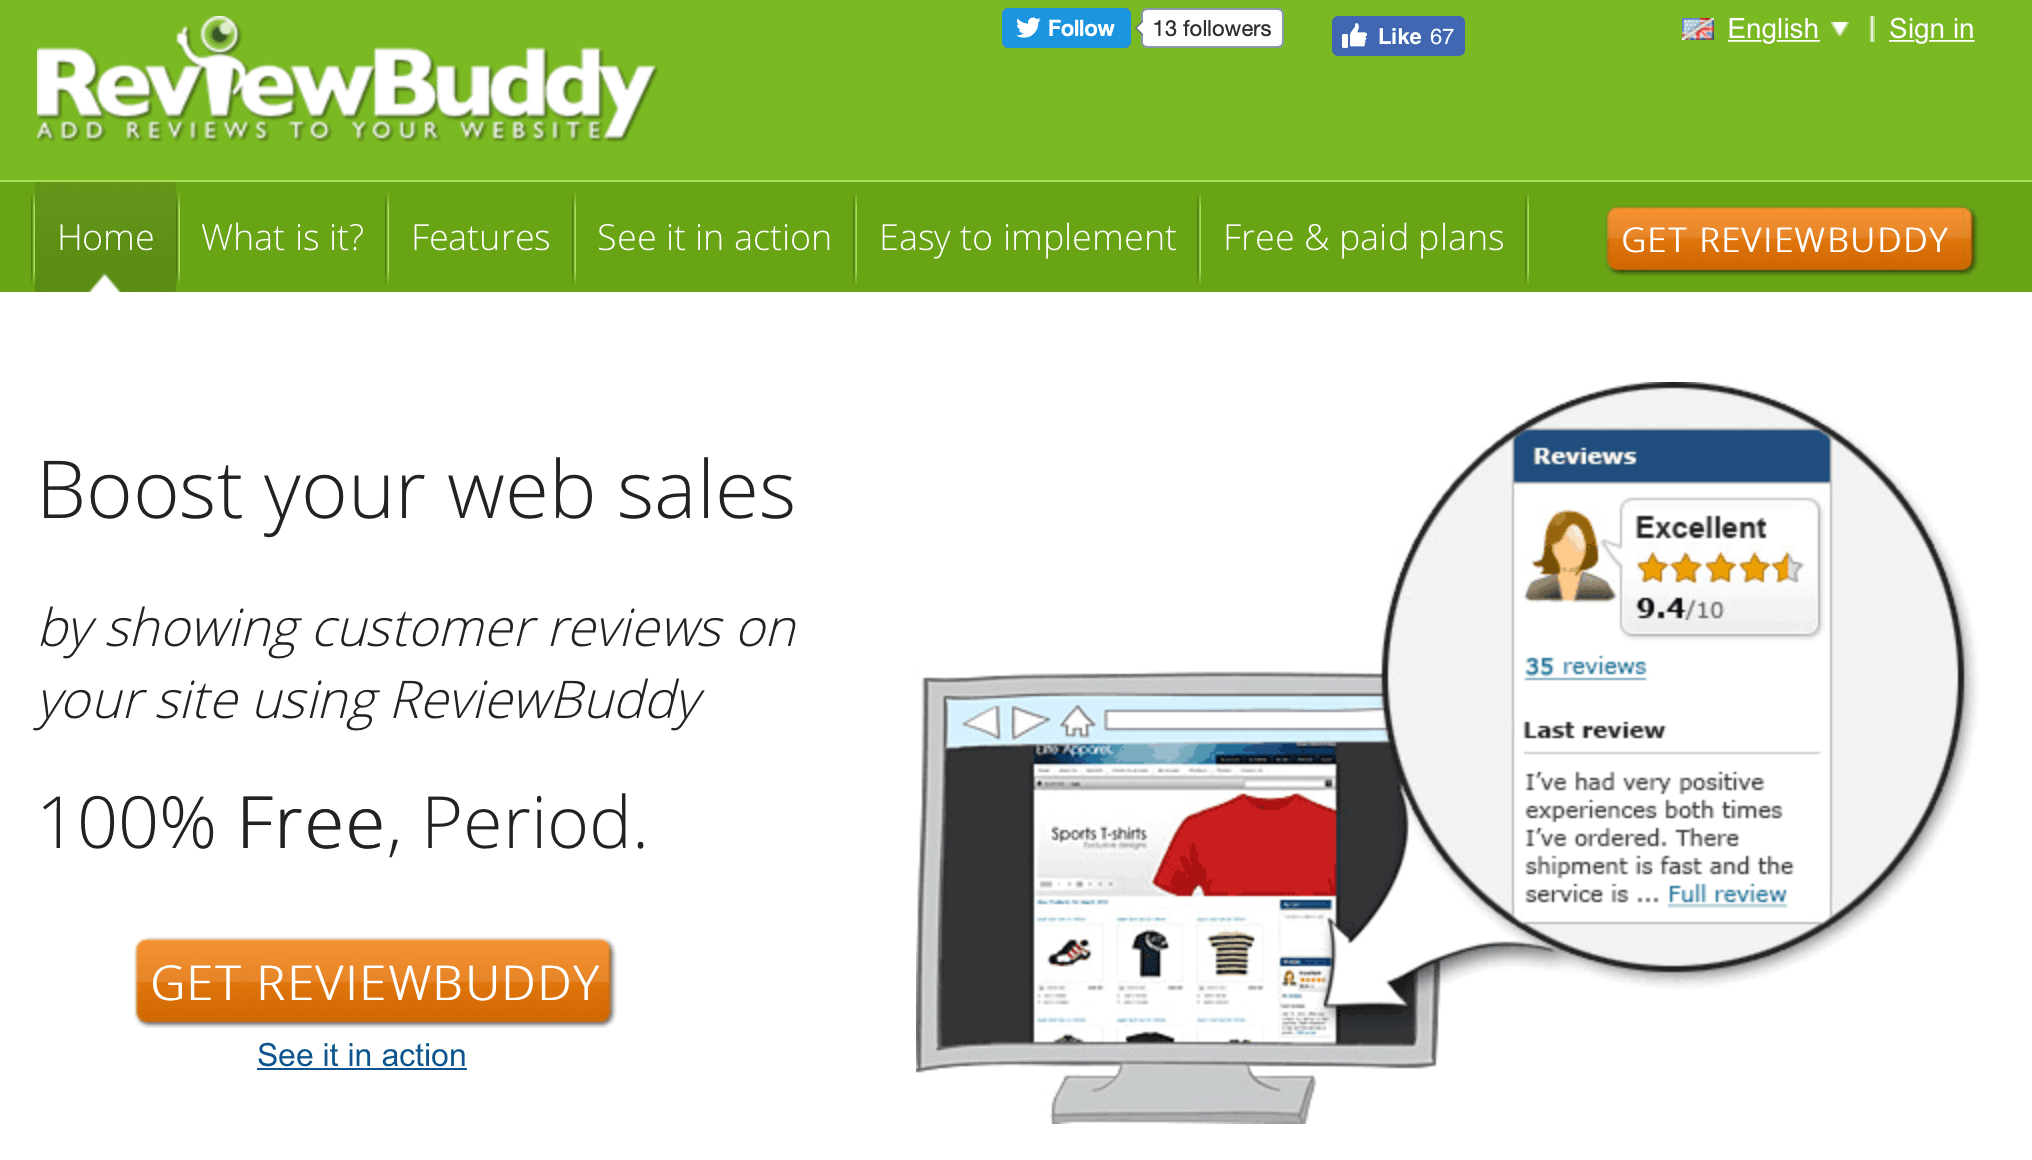 The ReviewBuddy website.